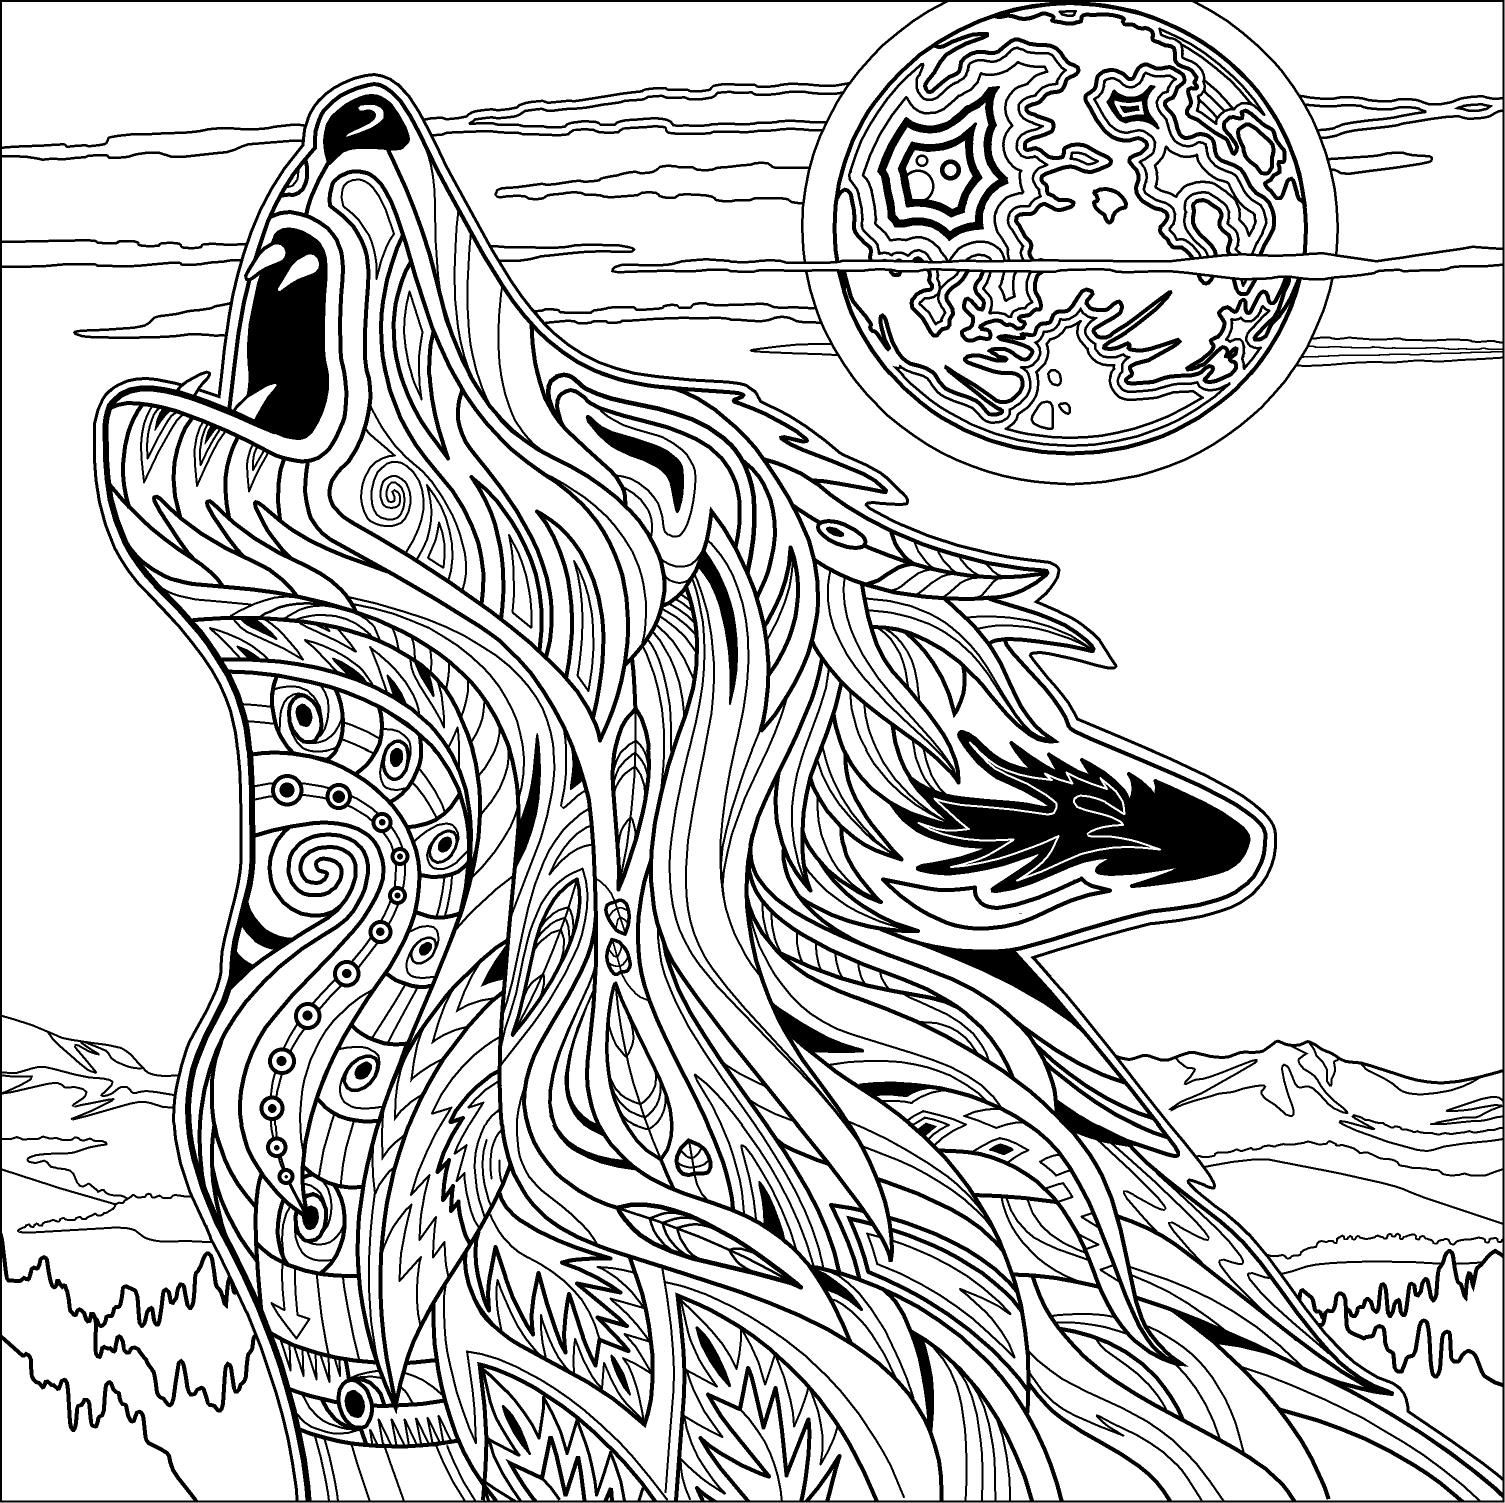 Dave Ember Illustration: Yellowstone Park Coloring Book | Coloring ...